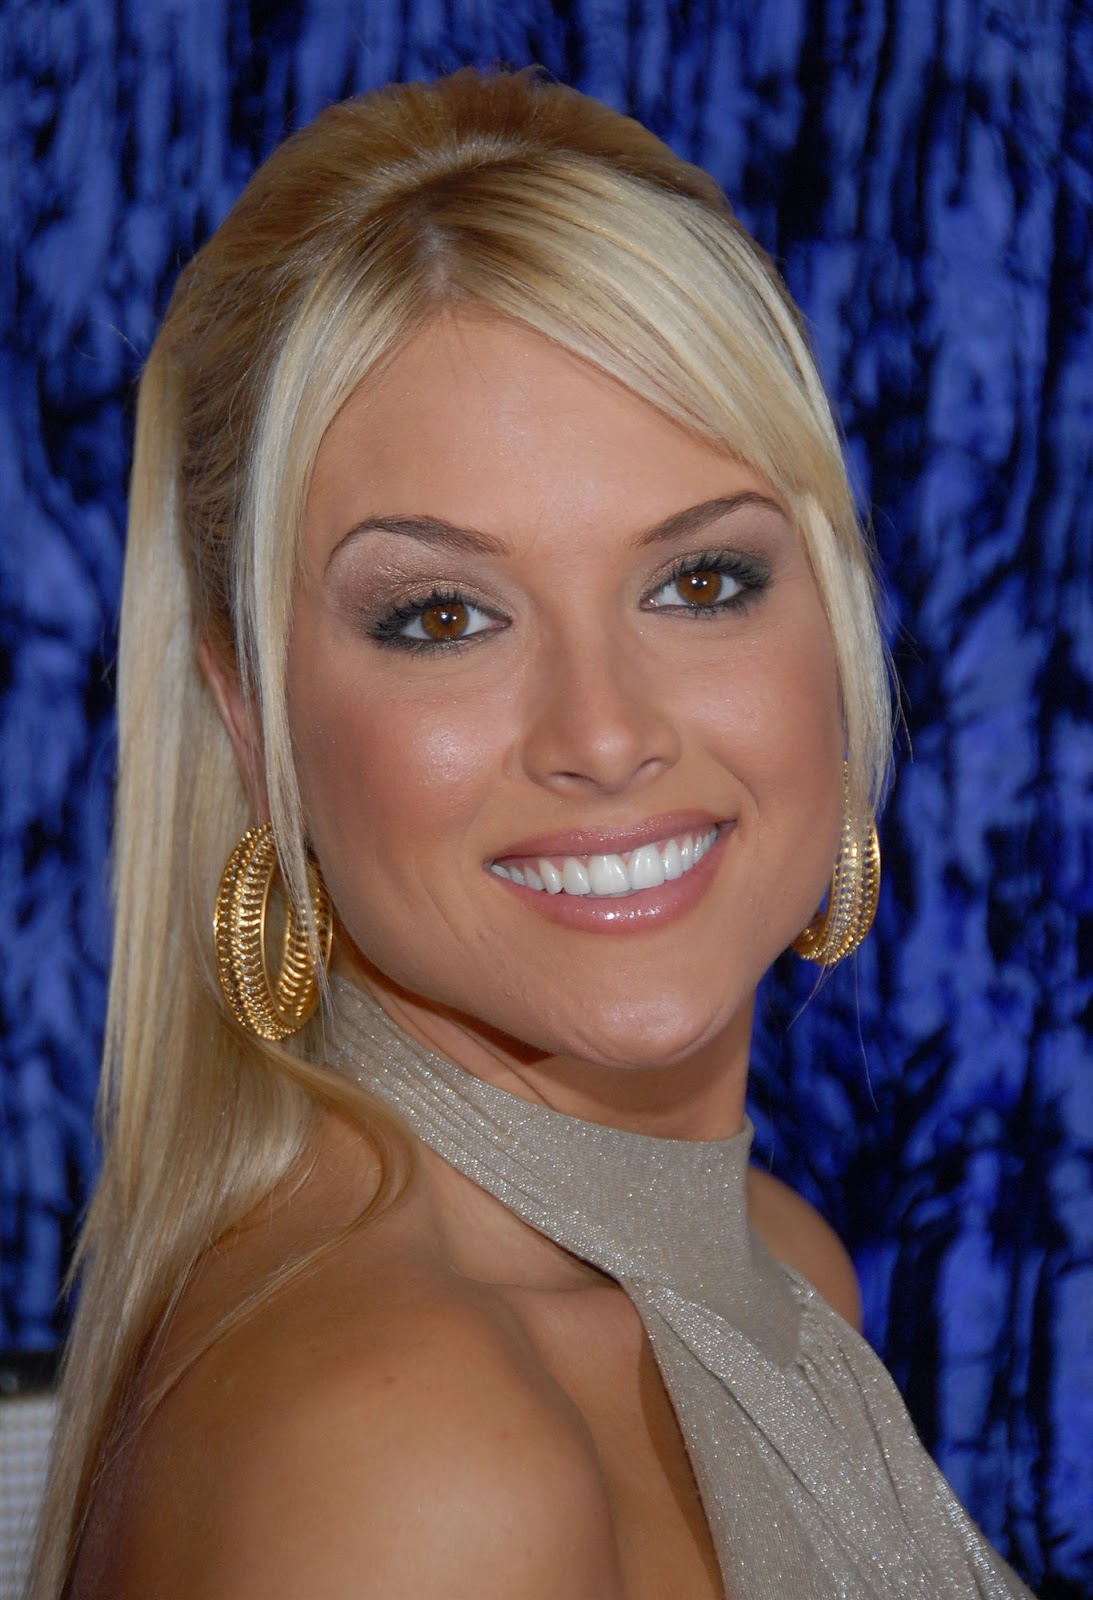 tara conner, miss usa 2006. Usa410